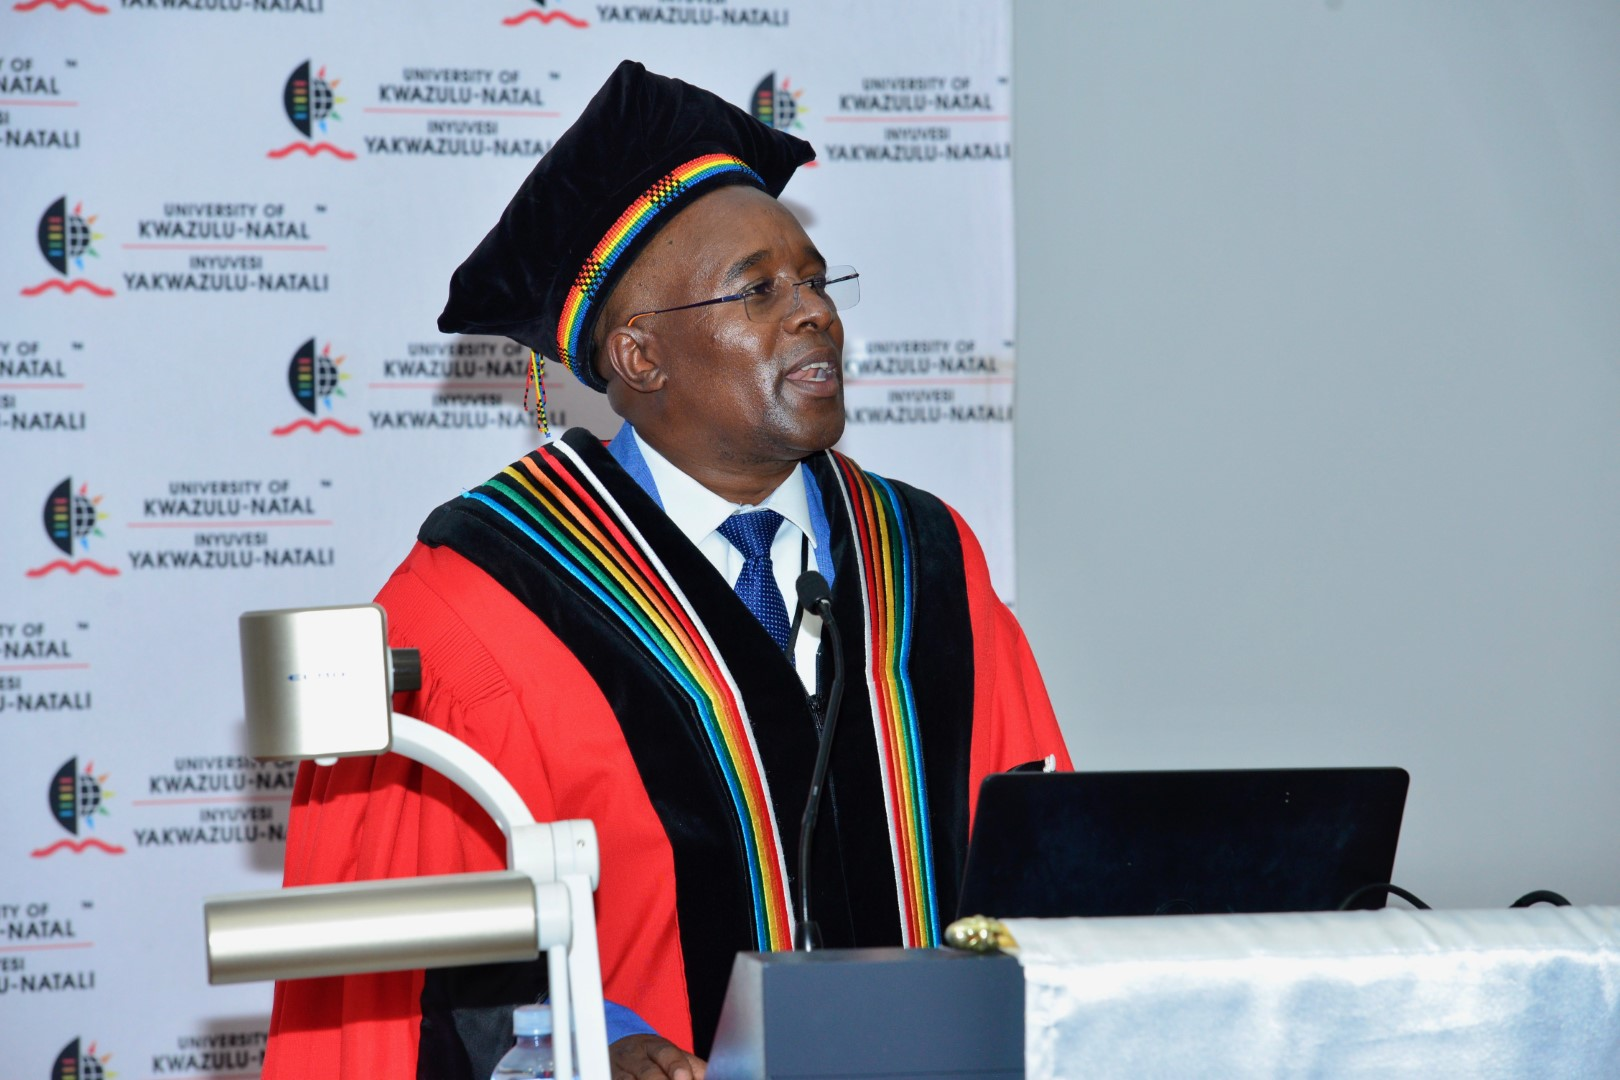 College Dean of Research Prof Pholoho Morojele speaks about the importance of an inaugural lecture